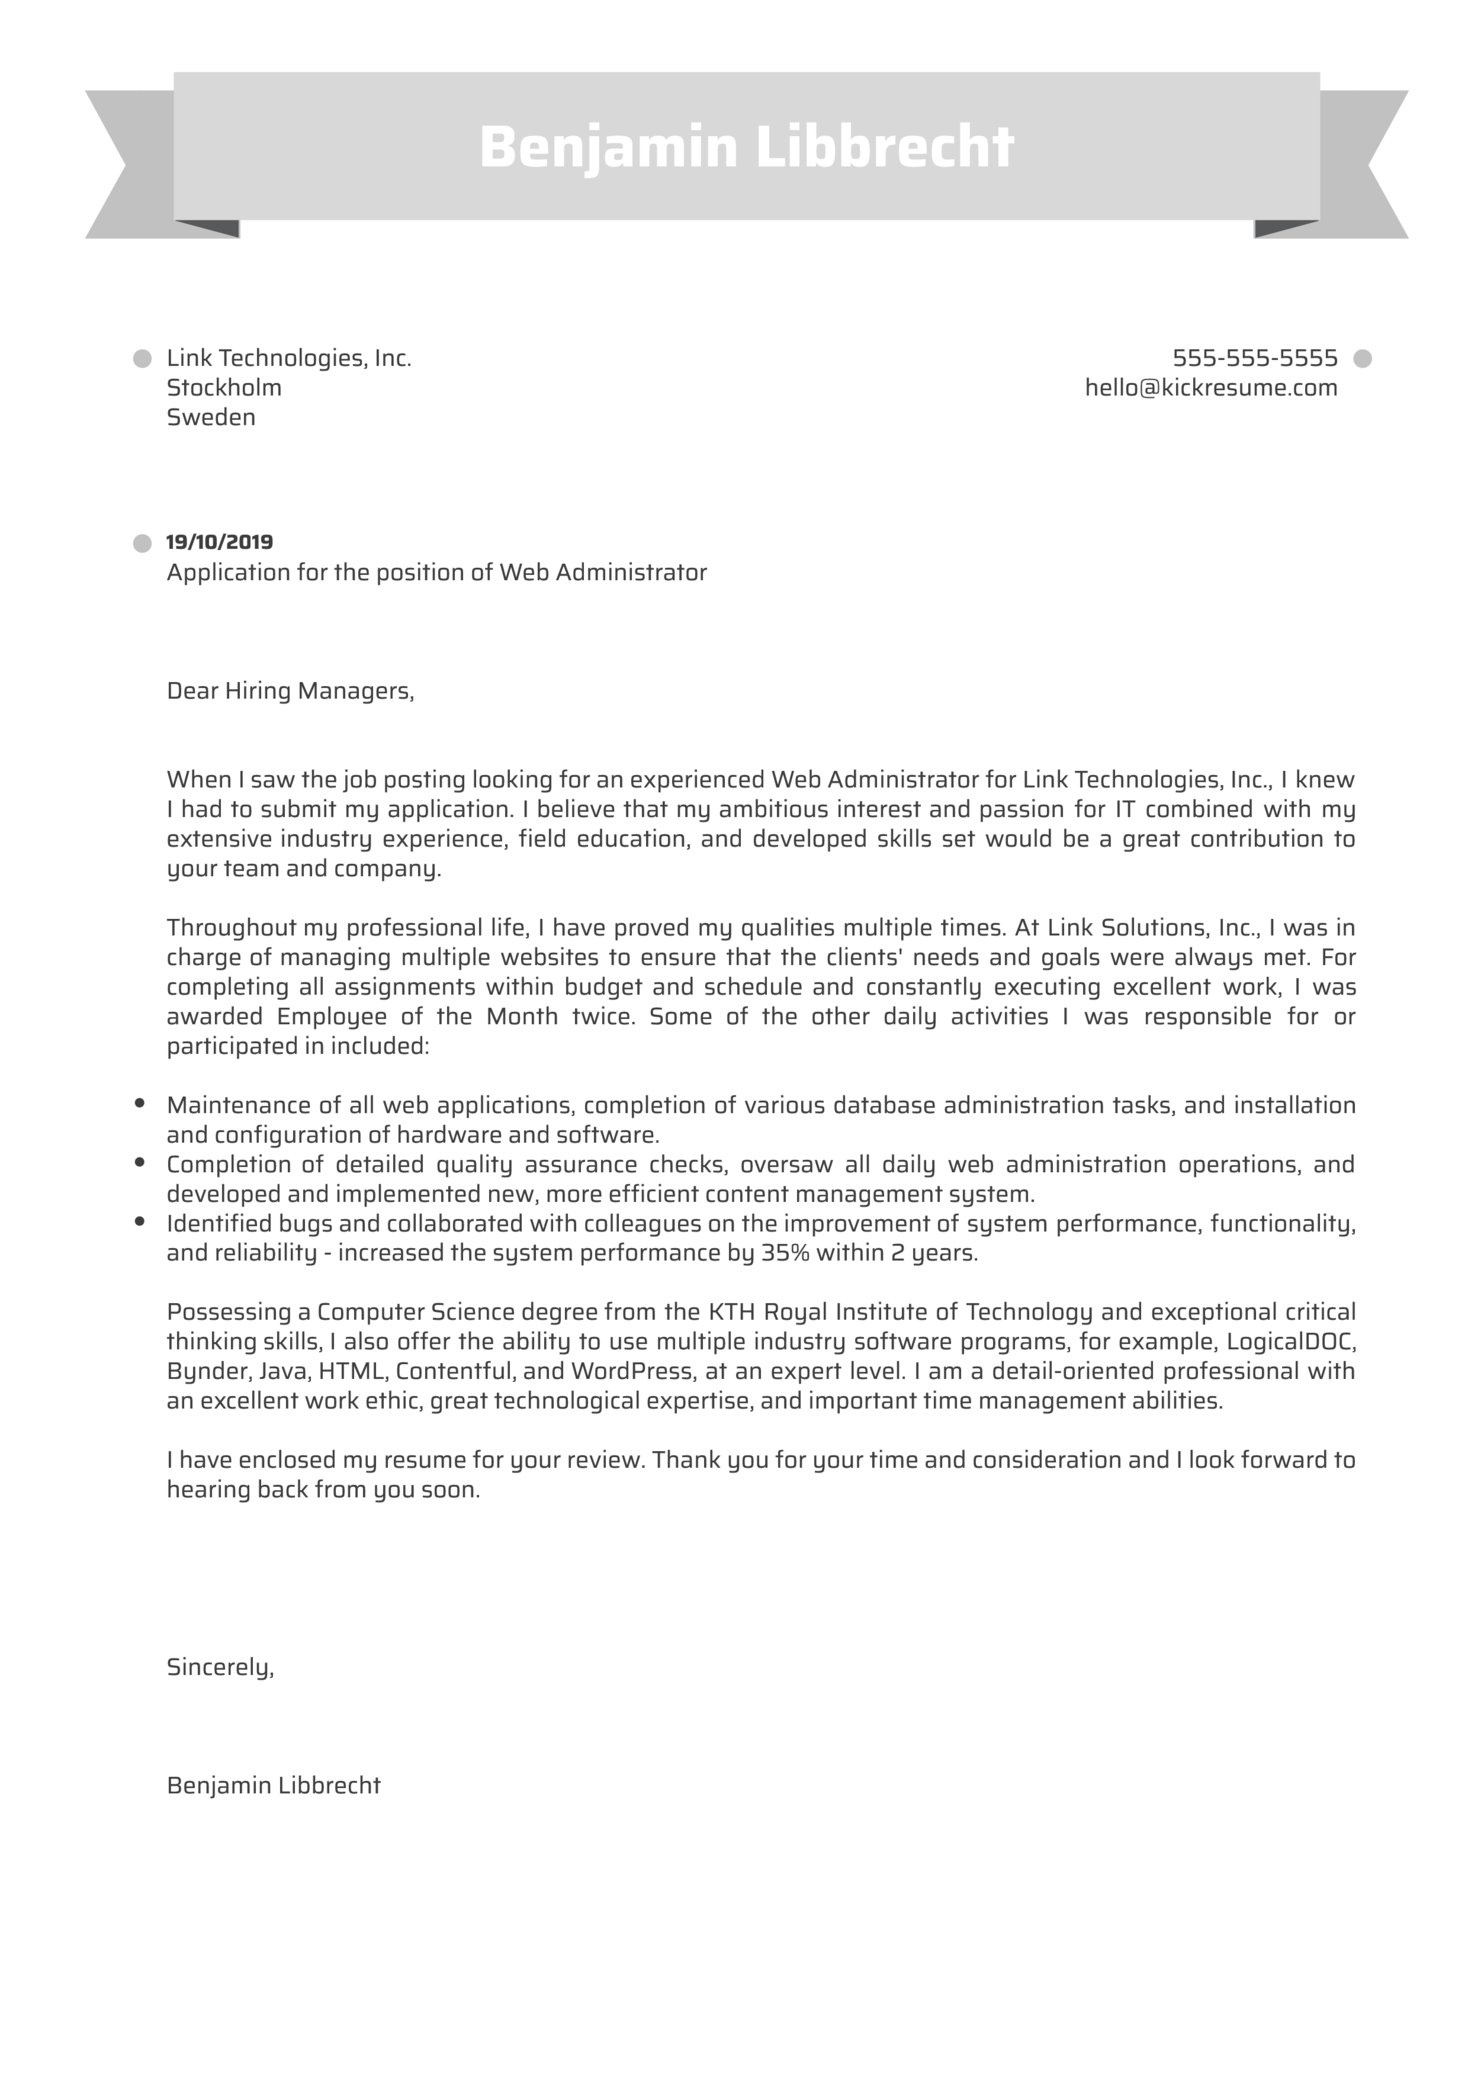 Web Administrator Cover Letter Example